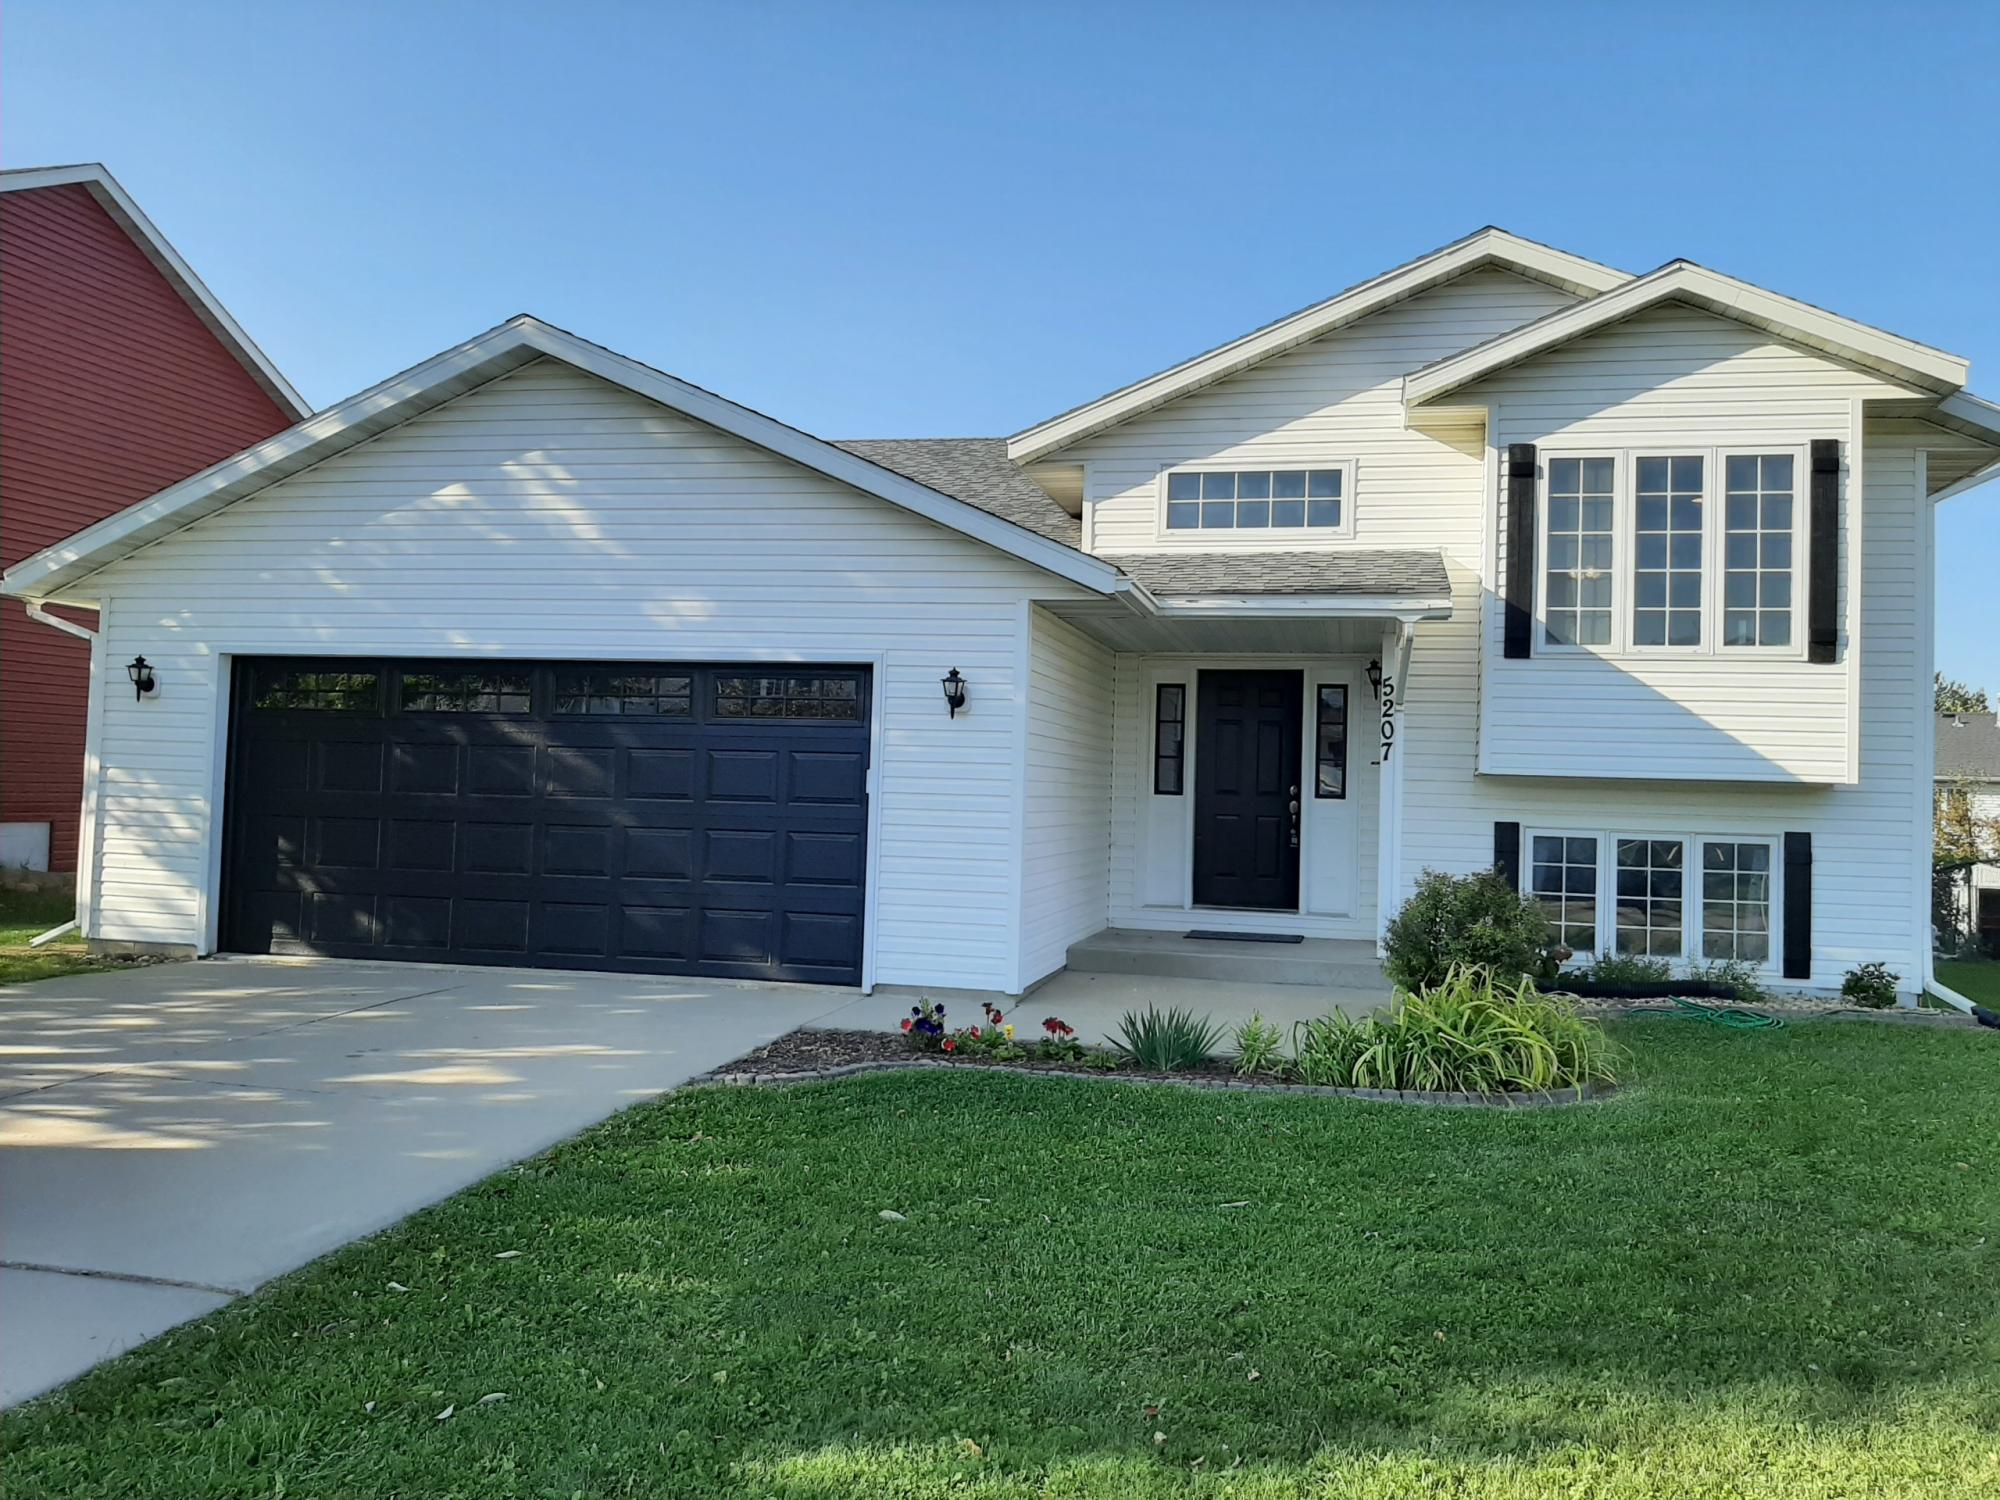 Picture of Home For Sale in Rochester, Minnesota, United States